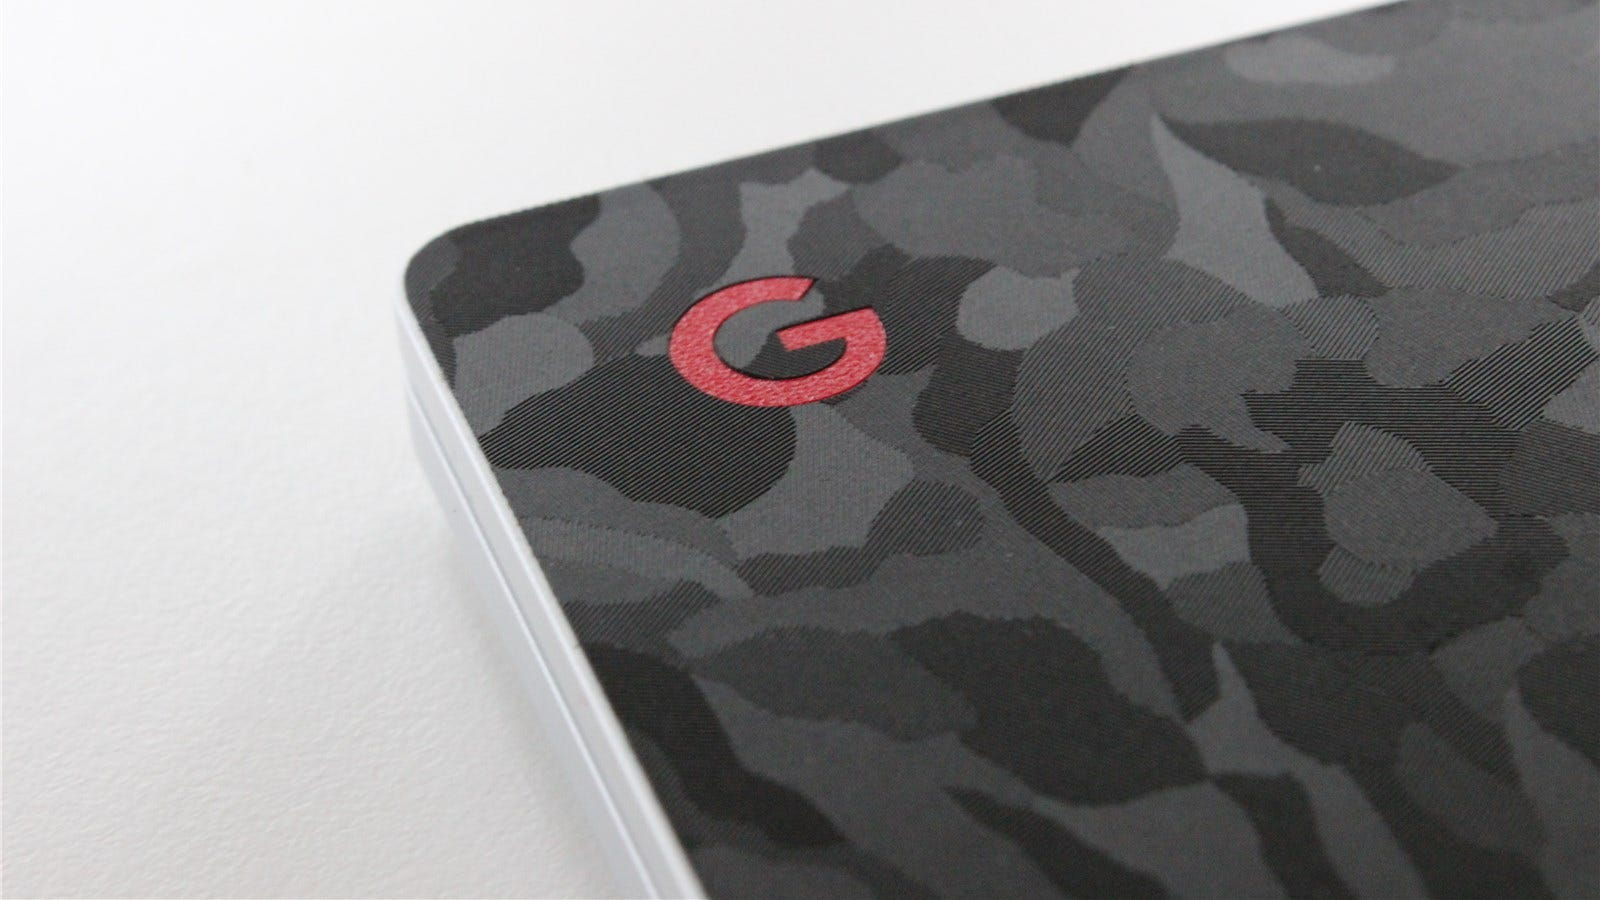 dbrand Black Camo with a red Google logo on the Pixlebook